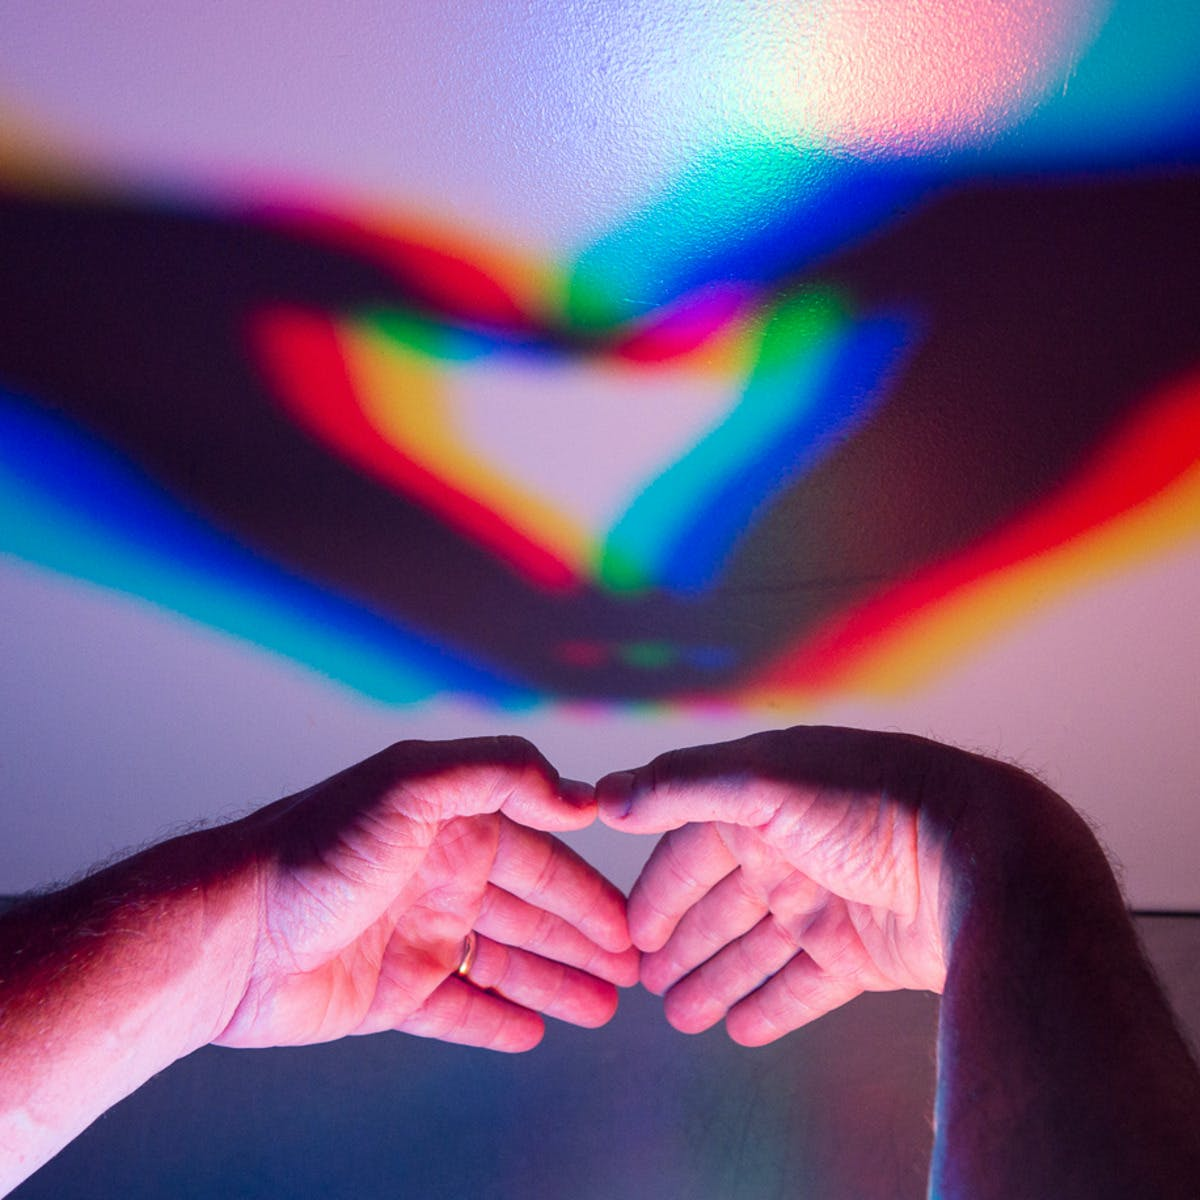 Exploring Light: Hands-on Activities and Strategies for Teachers